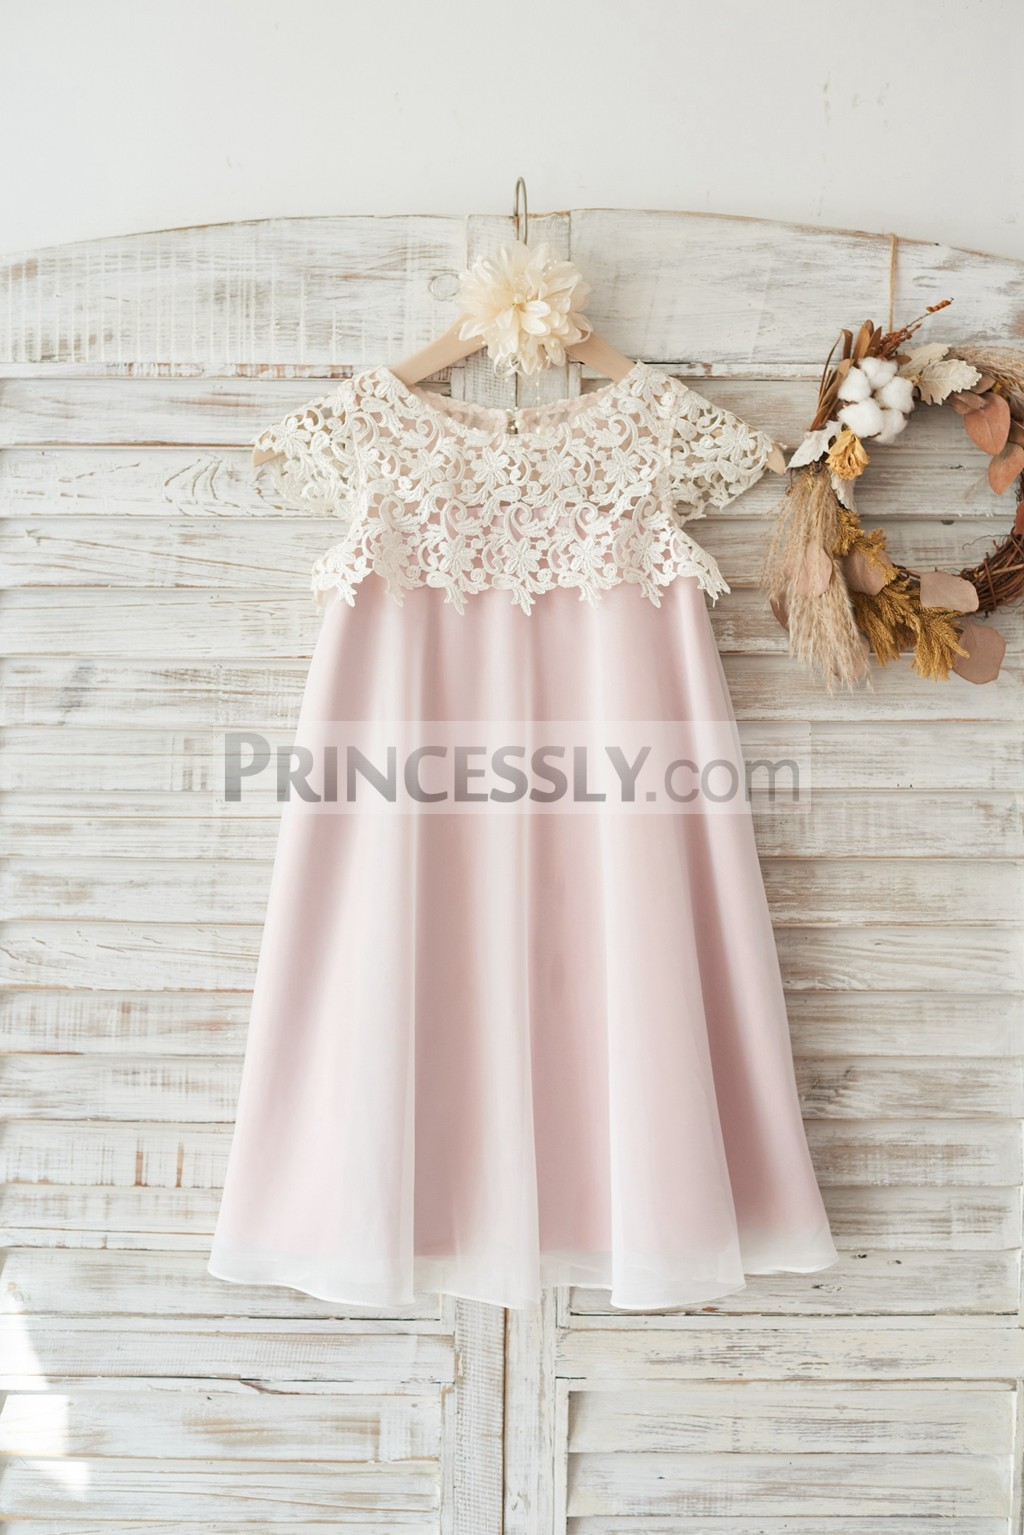 Princessly.com-K1003458-Boho Beach Lace Cap Sleeves Ivory Chiffon Wedding Flower Girl Dress with Pink Lining-31